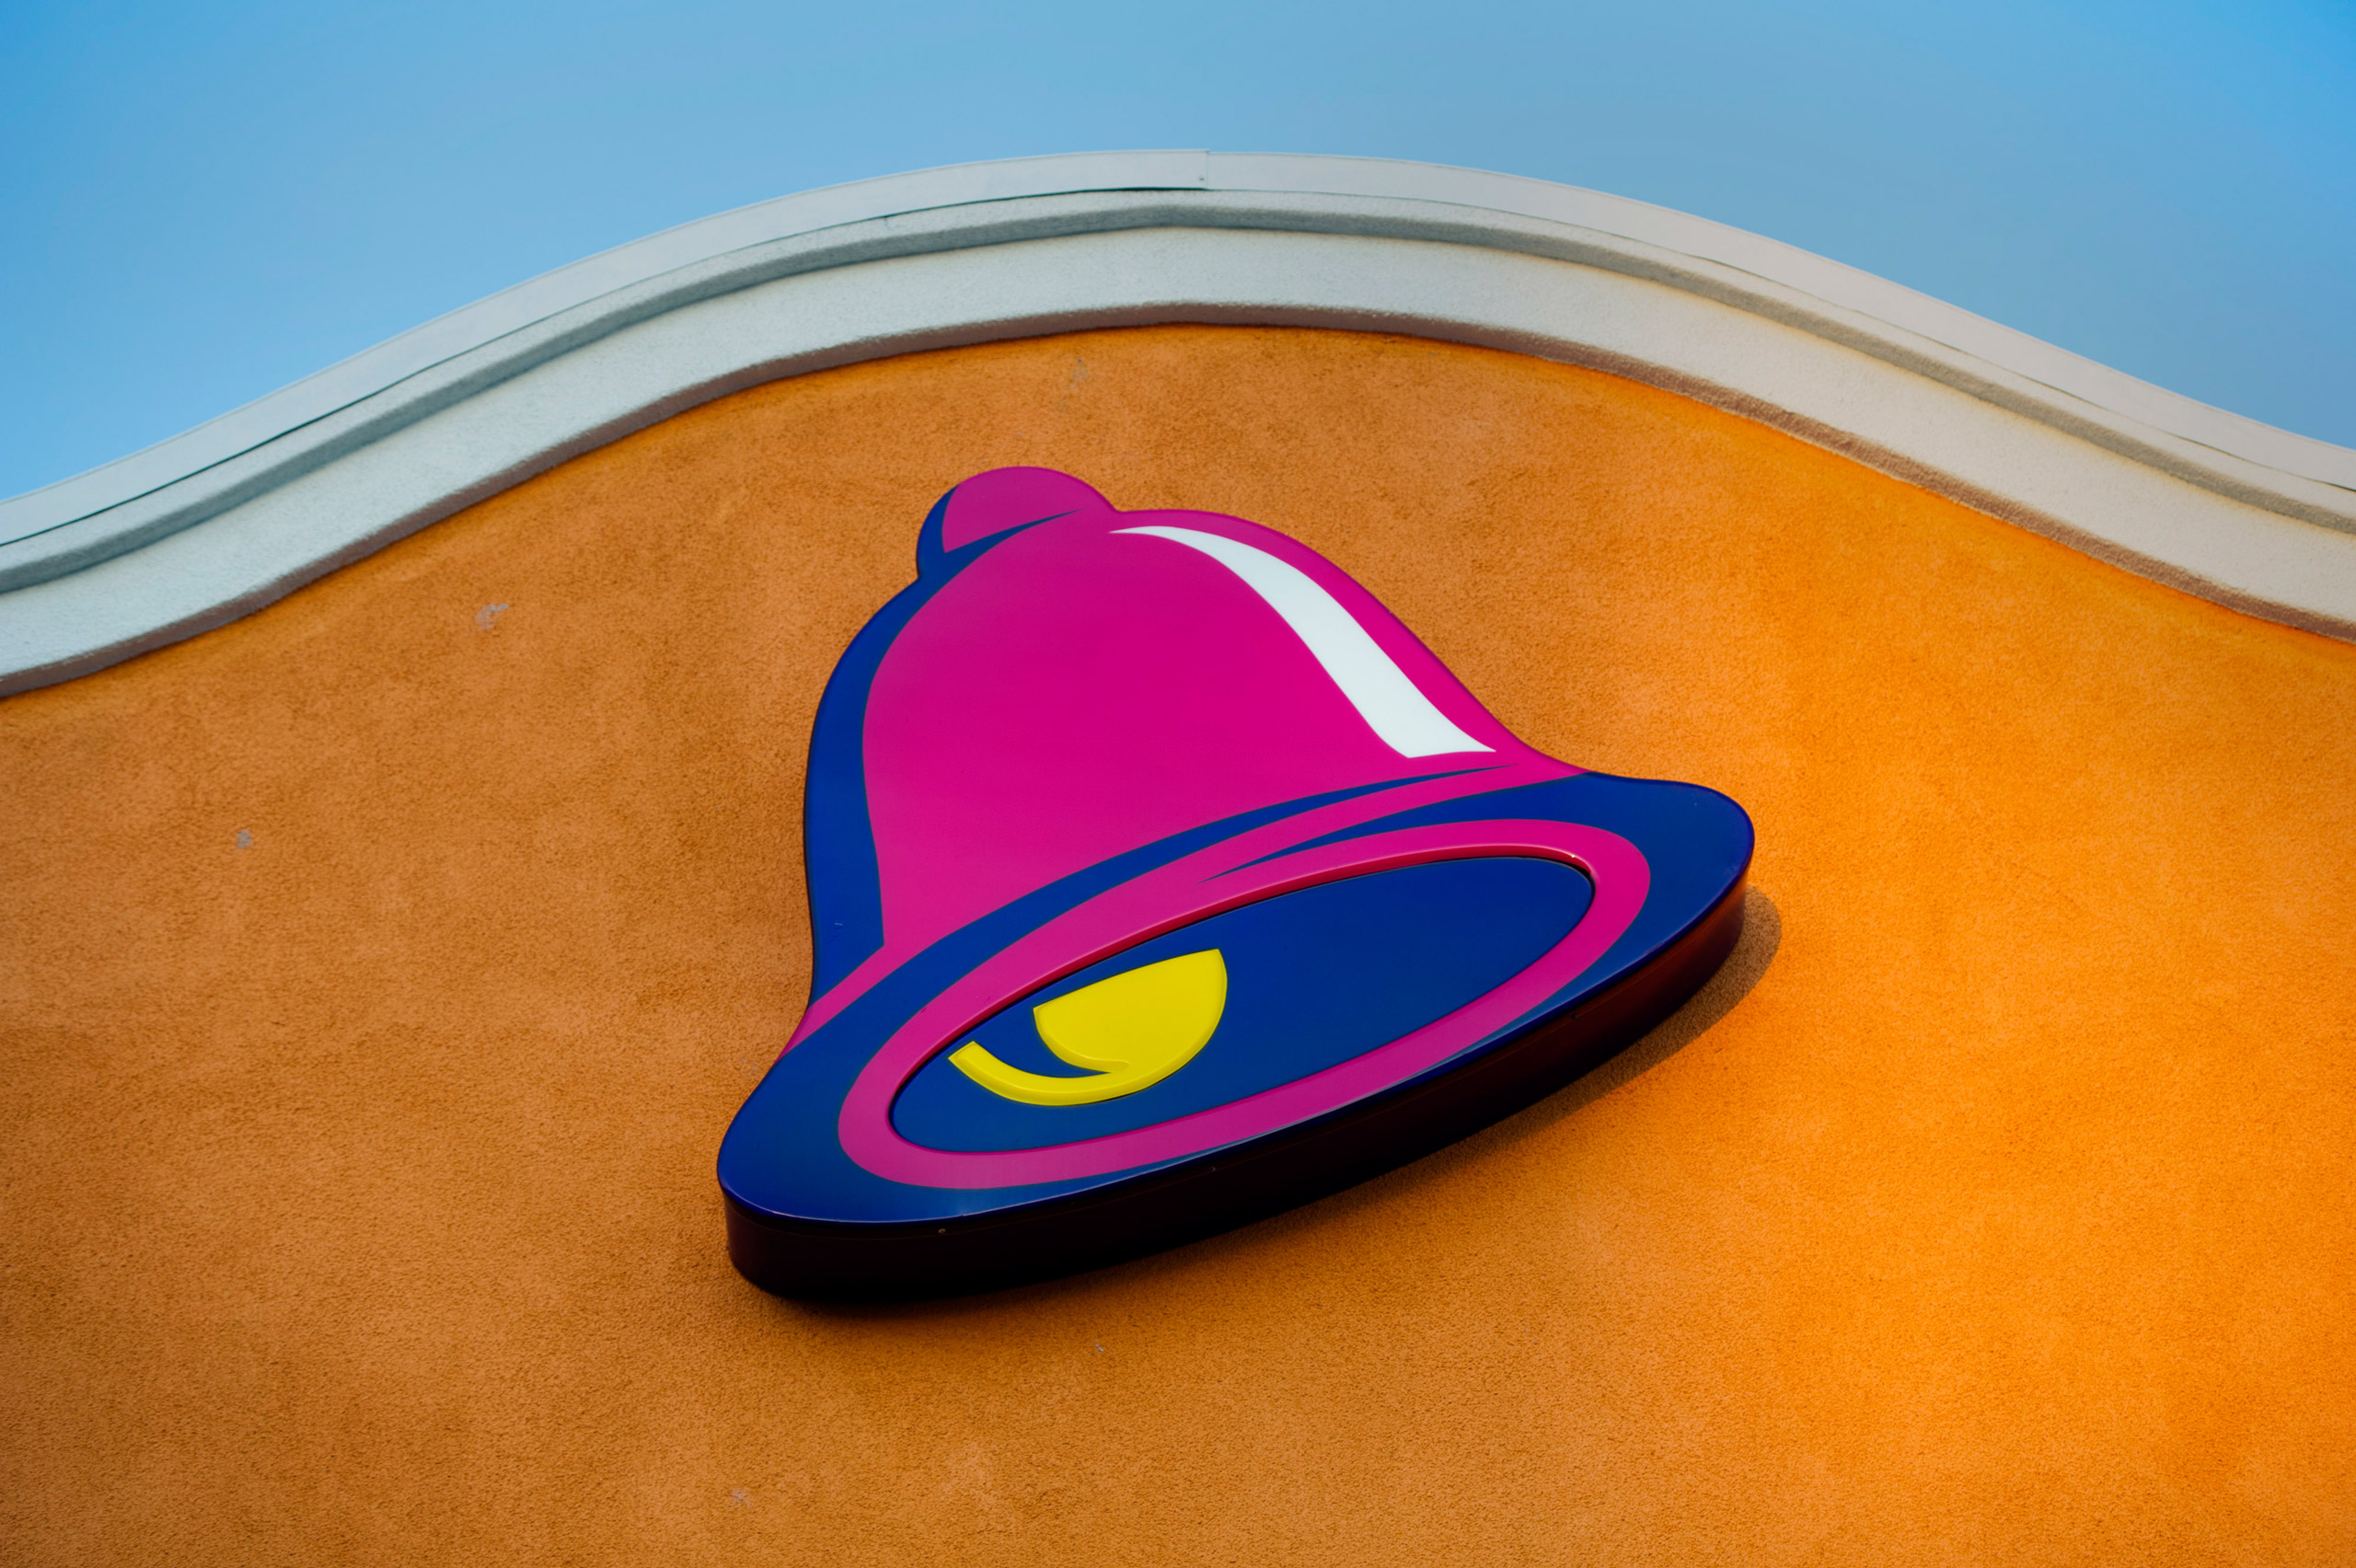 A Taco Bell in Daly City, Calif., on Apr. 18, 2014.